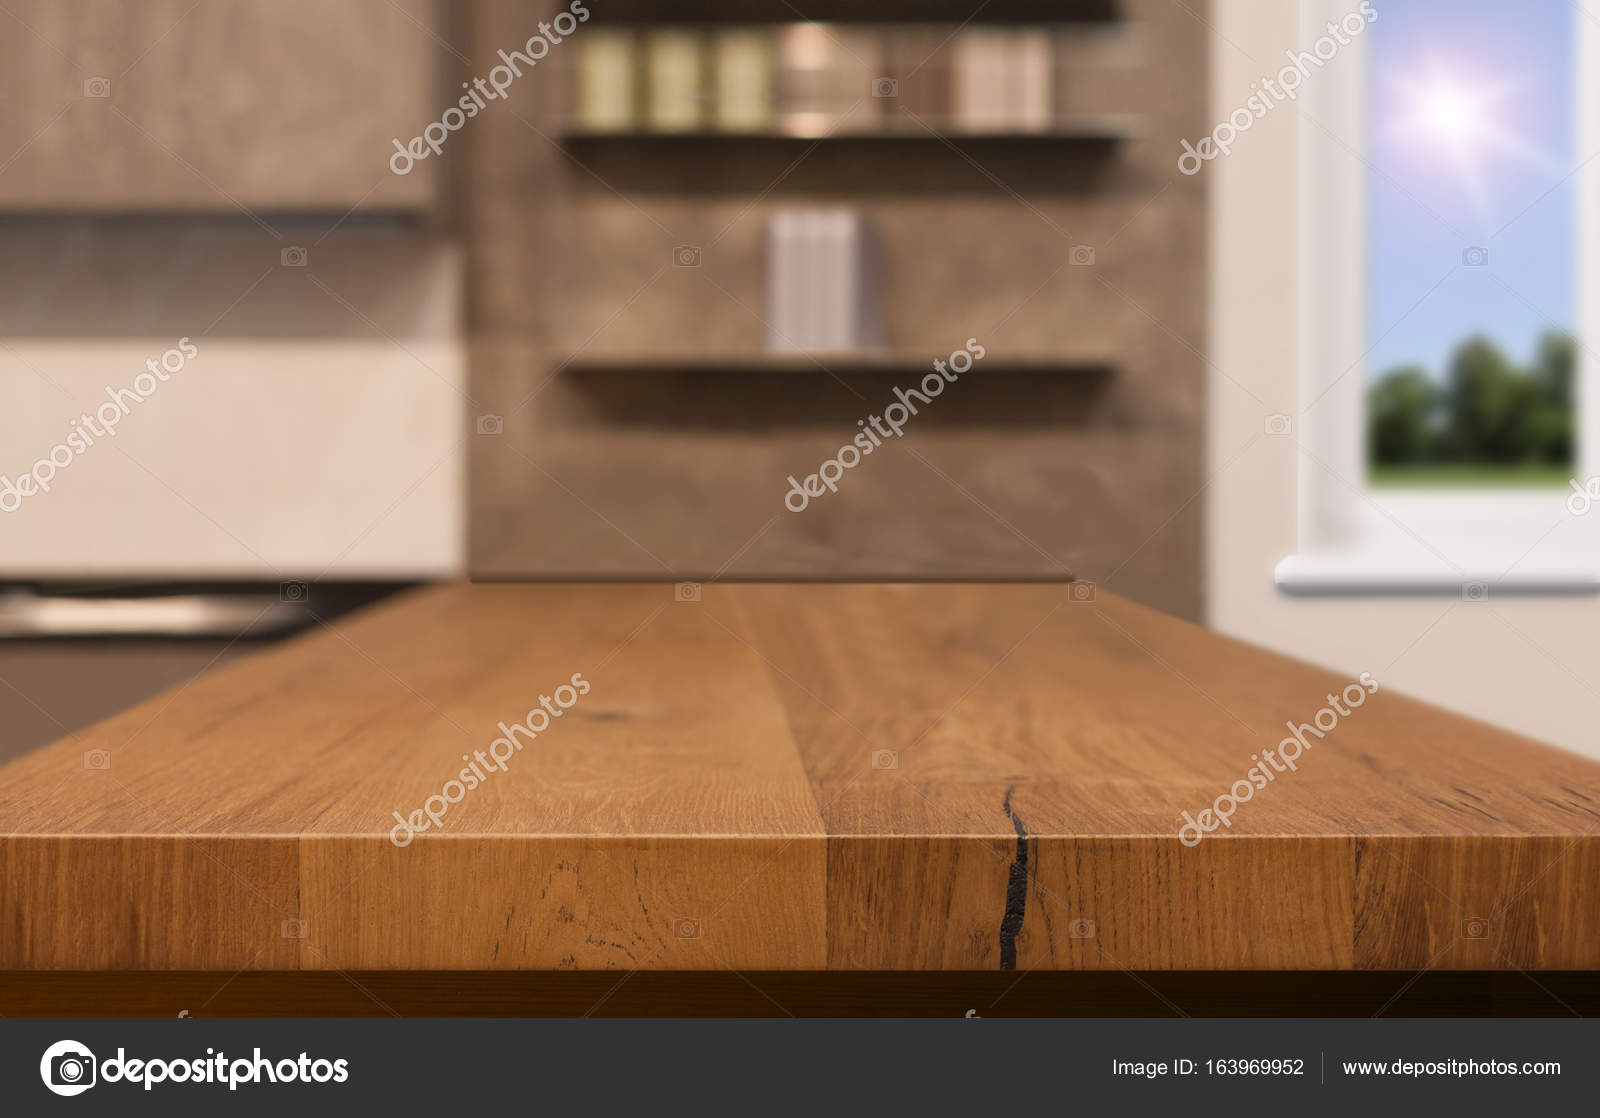 Wood Table Top As Kitchen Island On Blur Background Can Be Used For Display